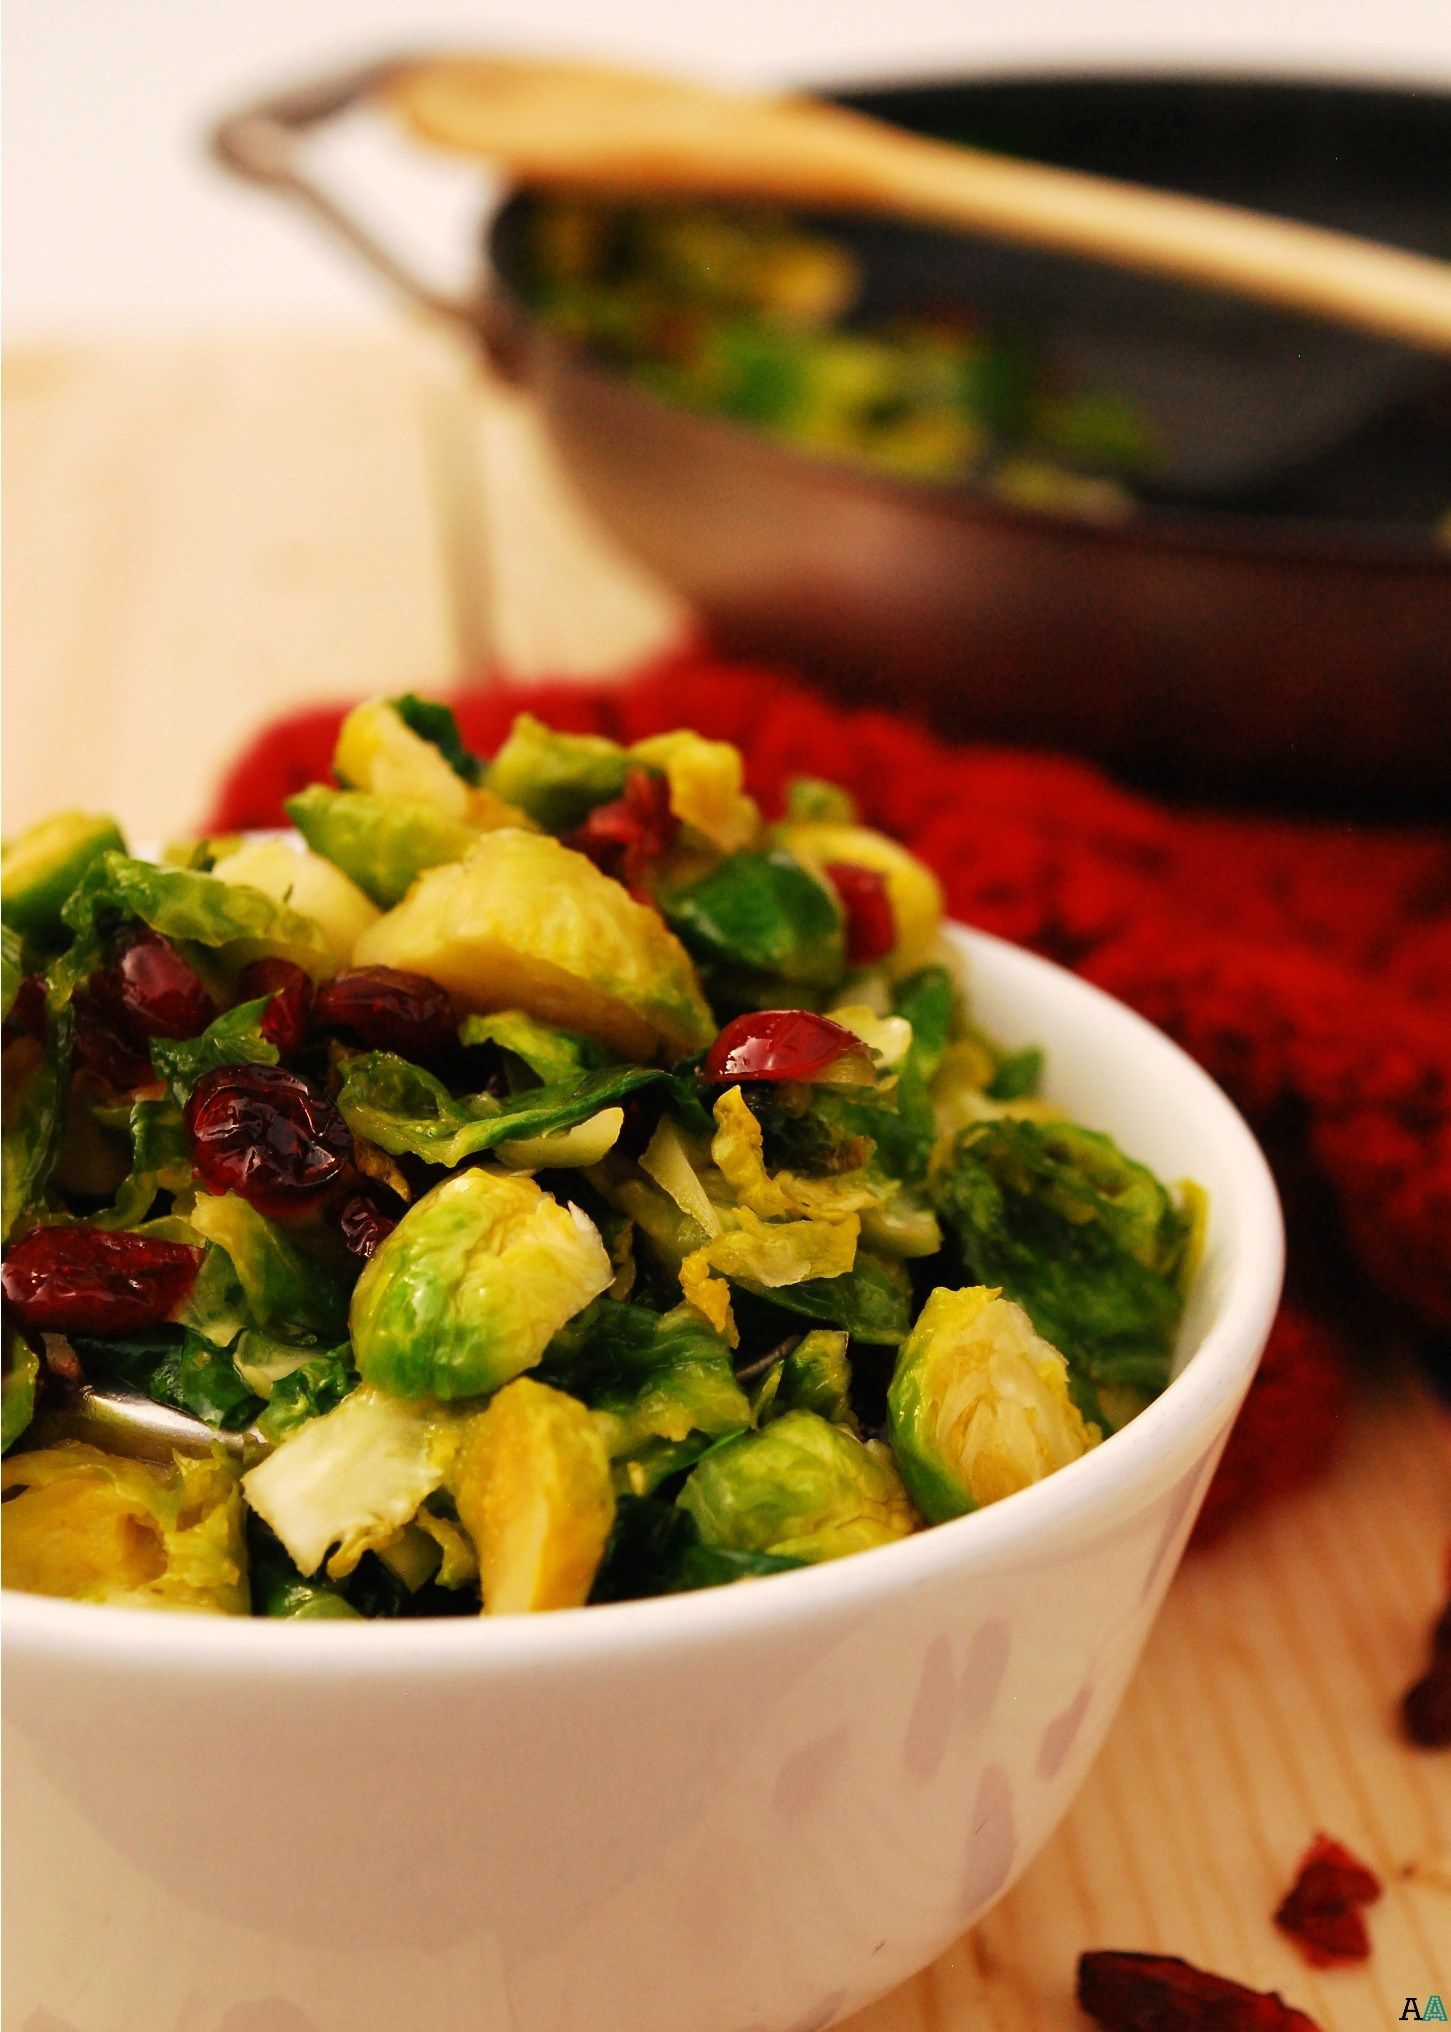 Carmelized Brussels Sprouts with Craisins (GF, DF, Egg